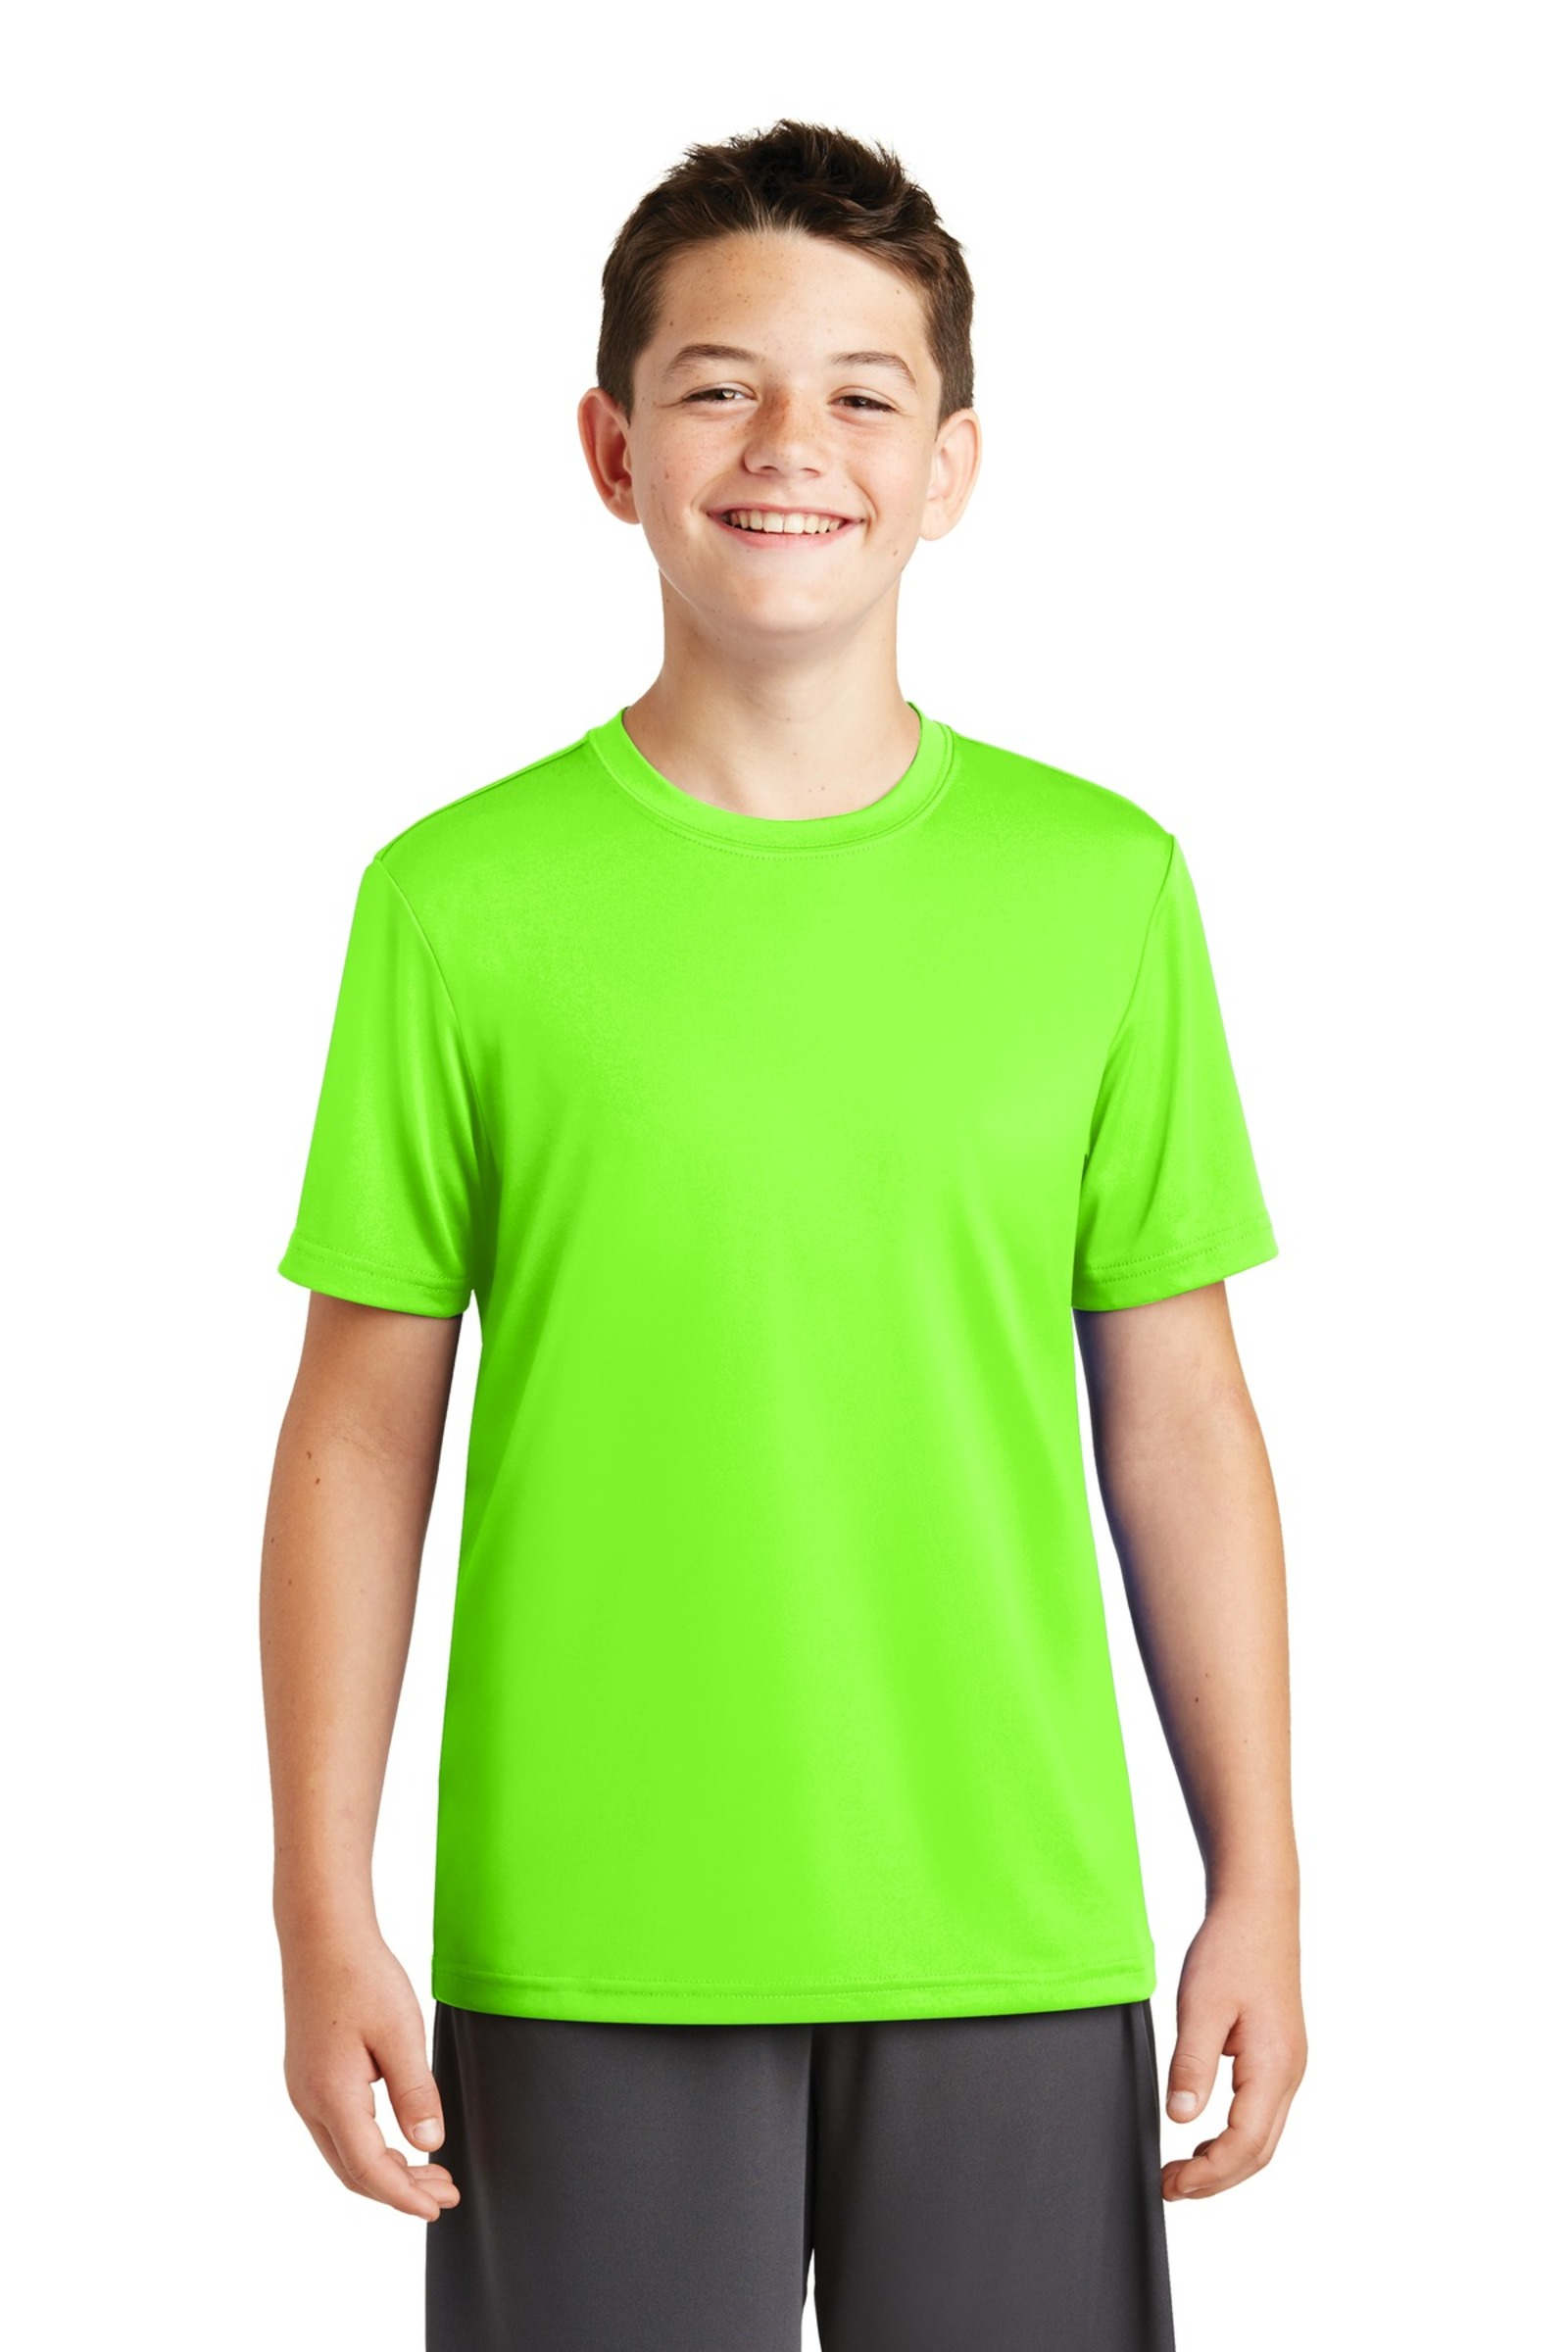 Sport-Tek Printed Youth PosiCharge Tough Tee